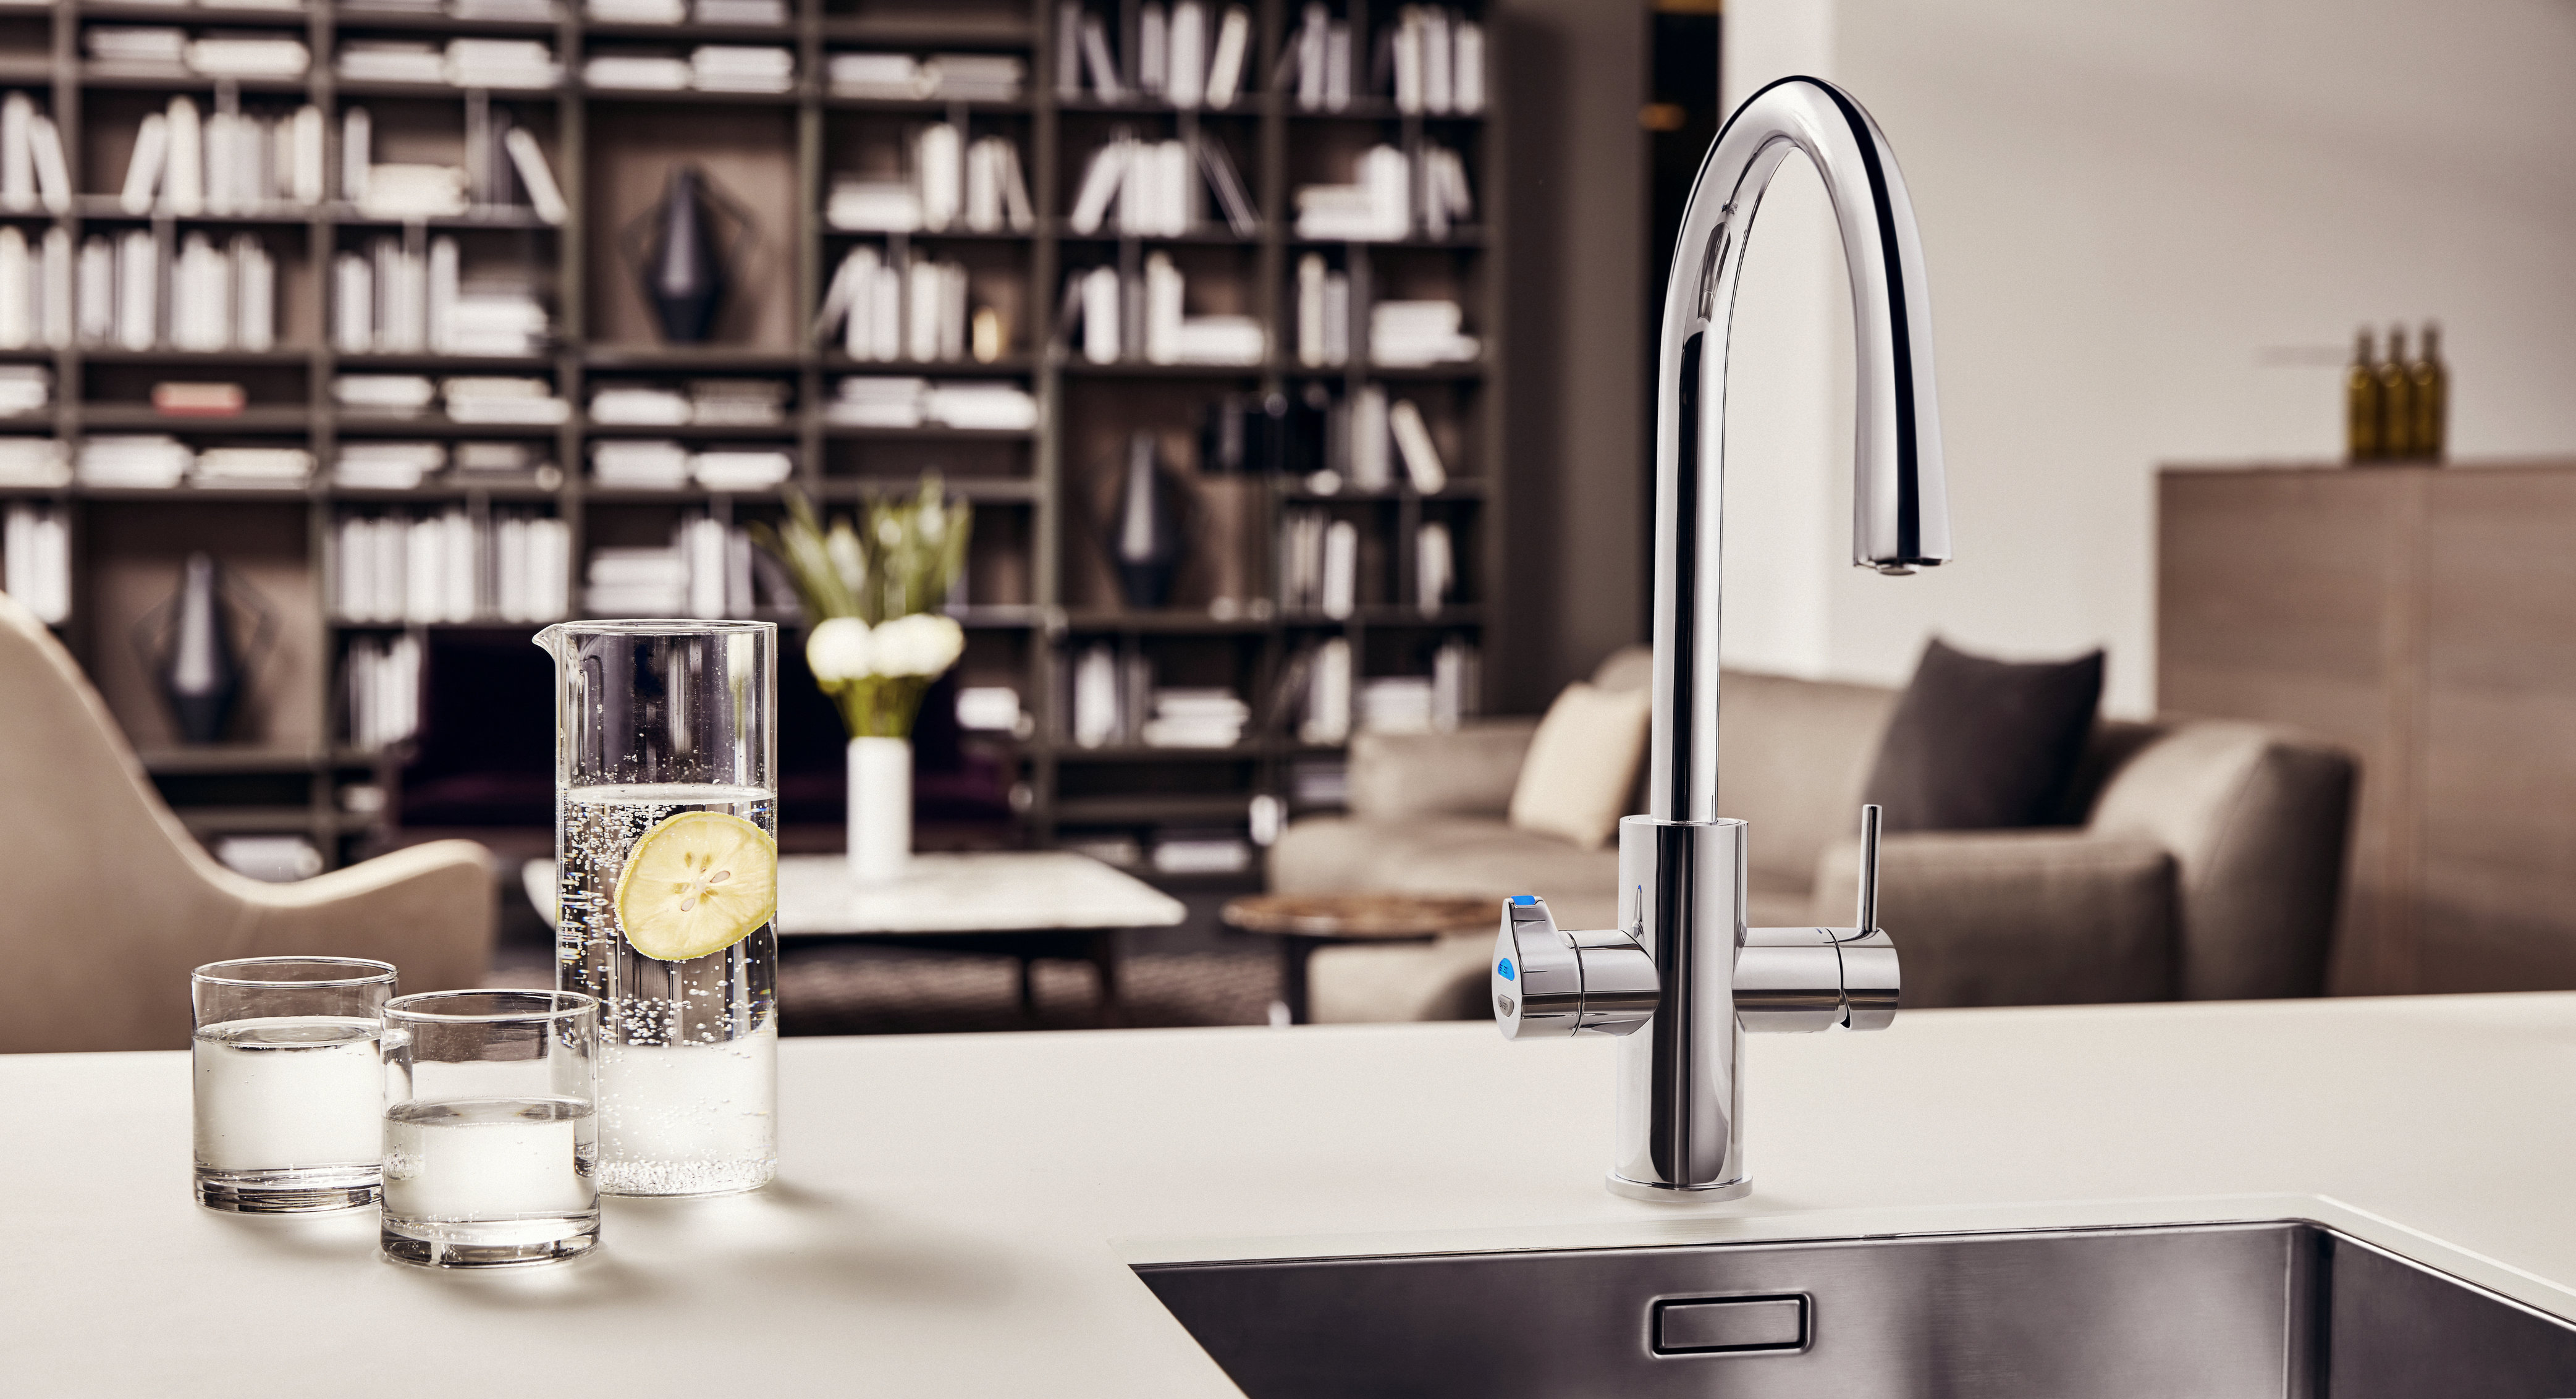 Five water options in one tap design